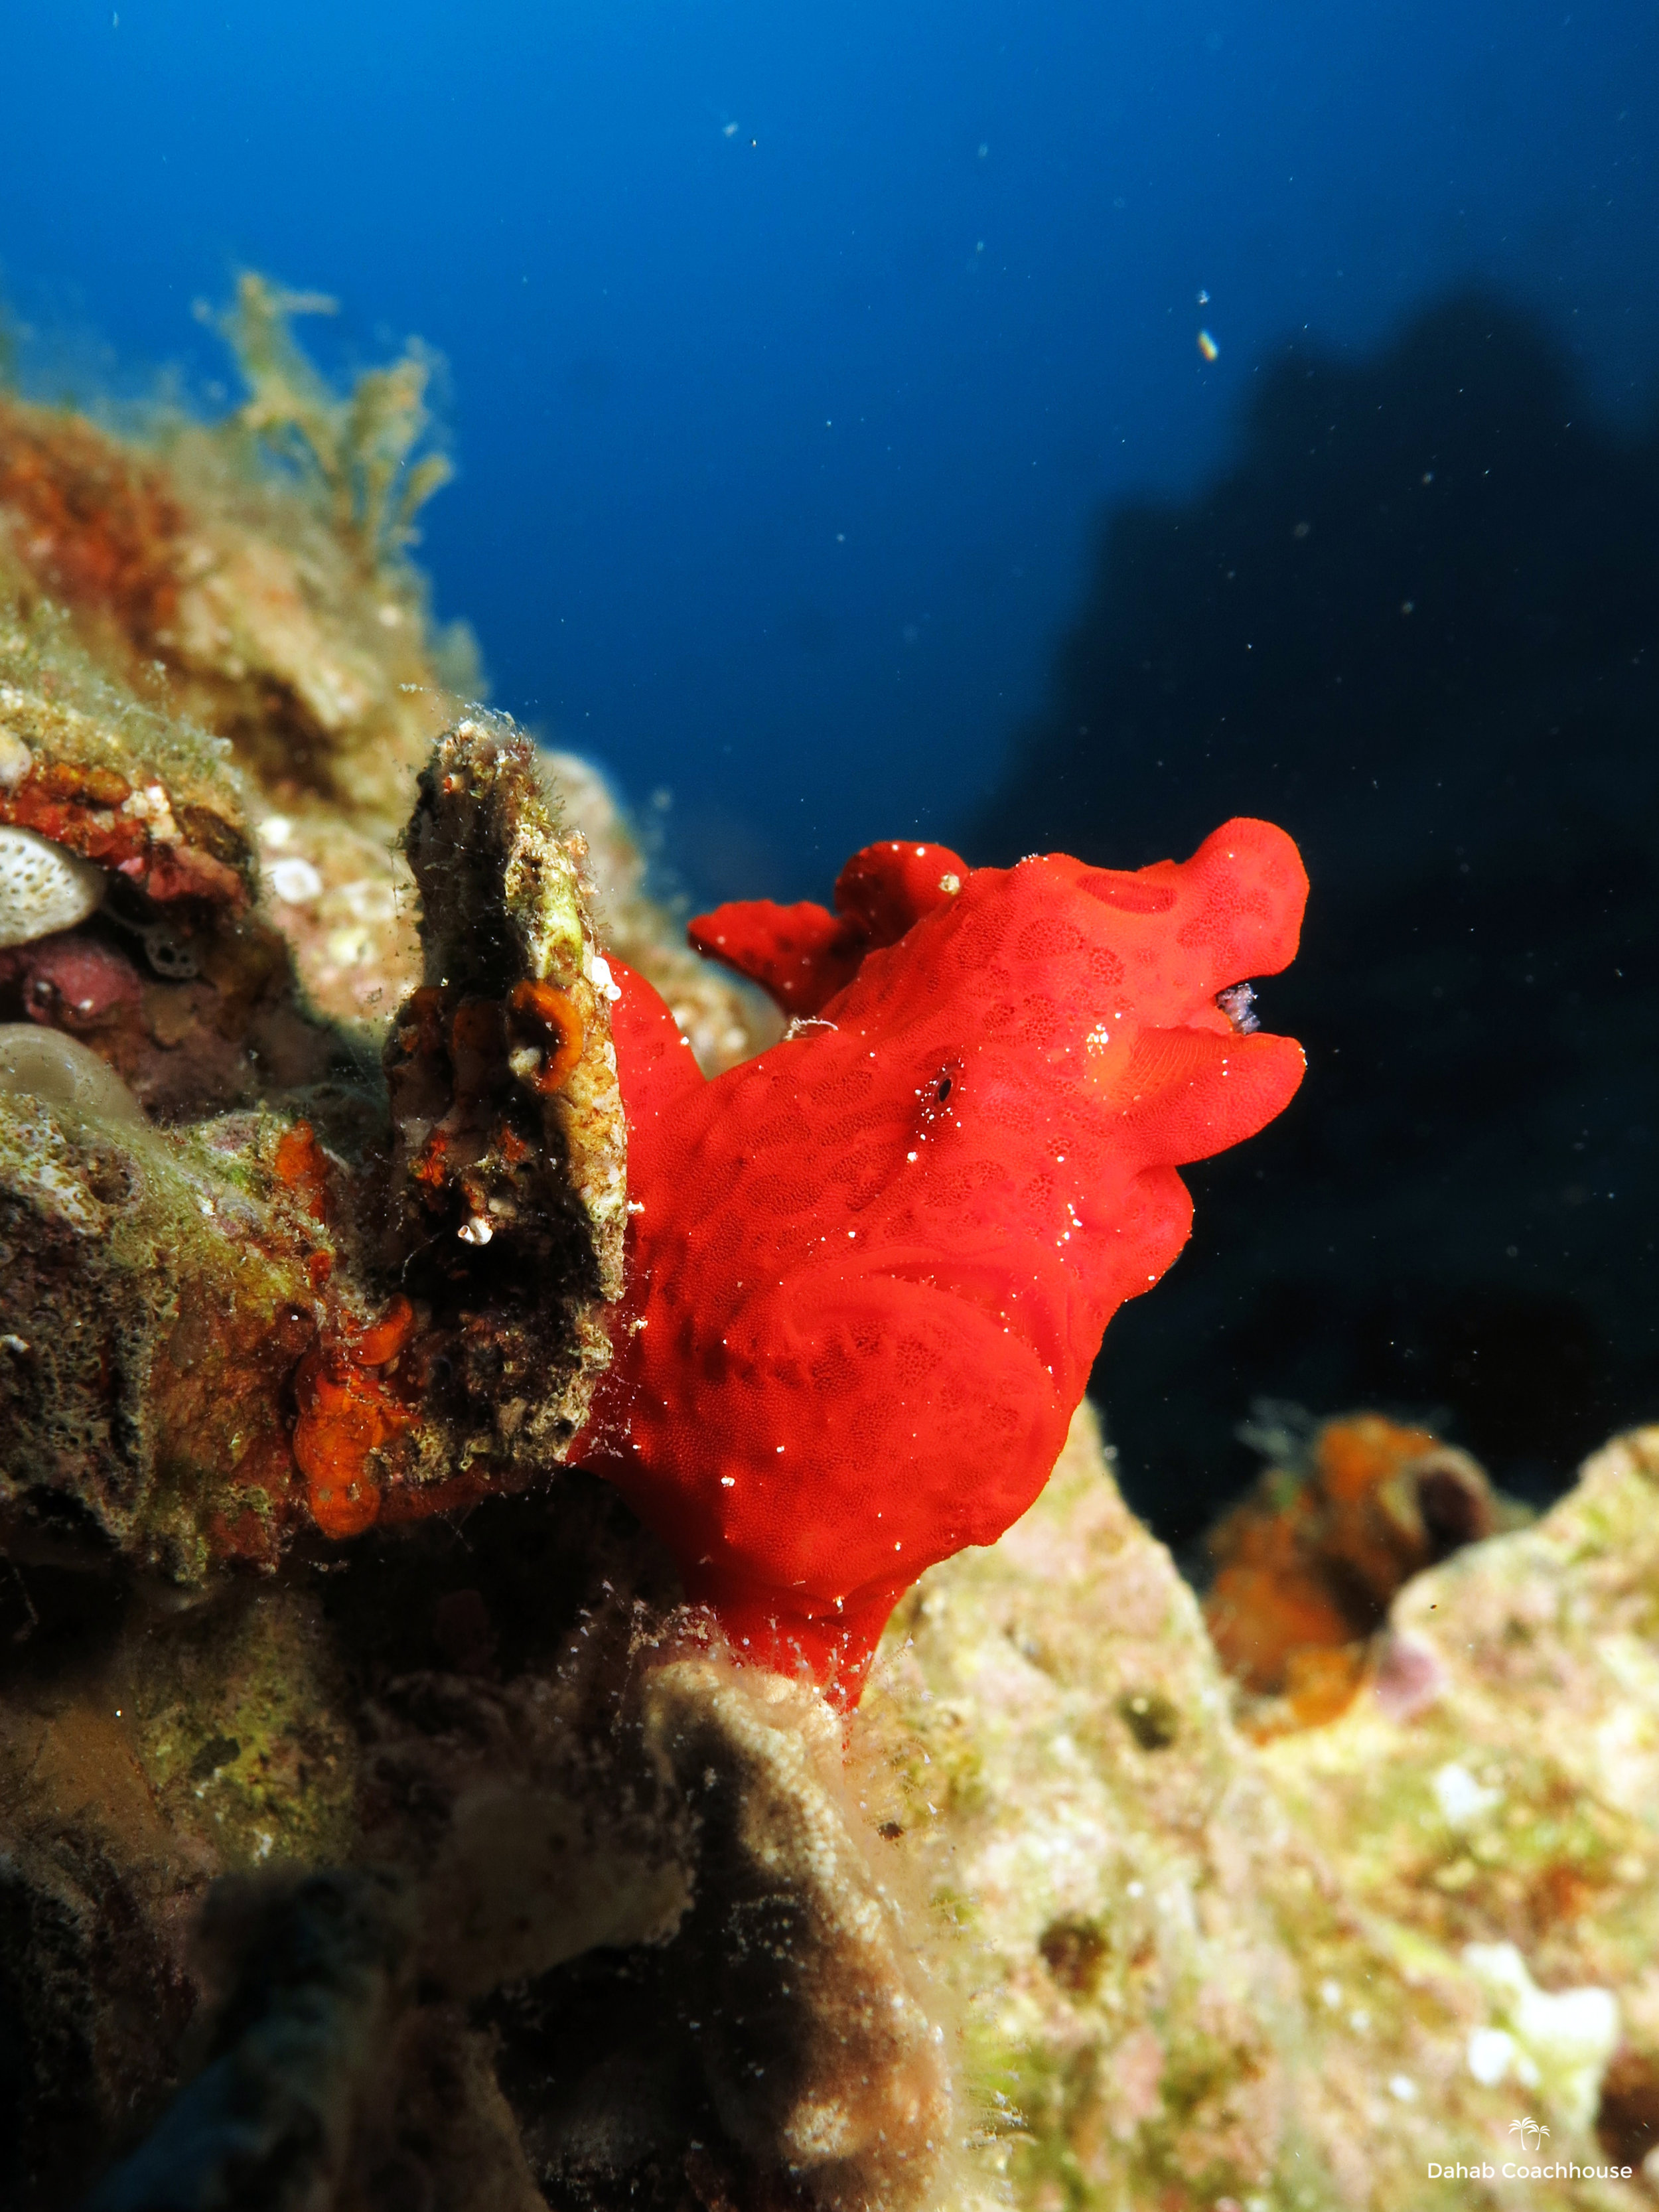 Dahab_Coachhouse_Egypt_Red_Sea_Diving_Beach_Accommodation_Holiday_Travel_Frogfish.JPG